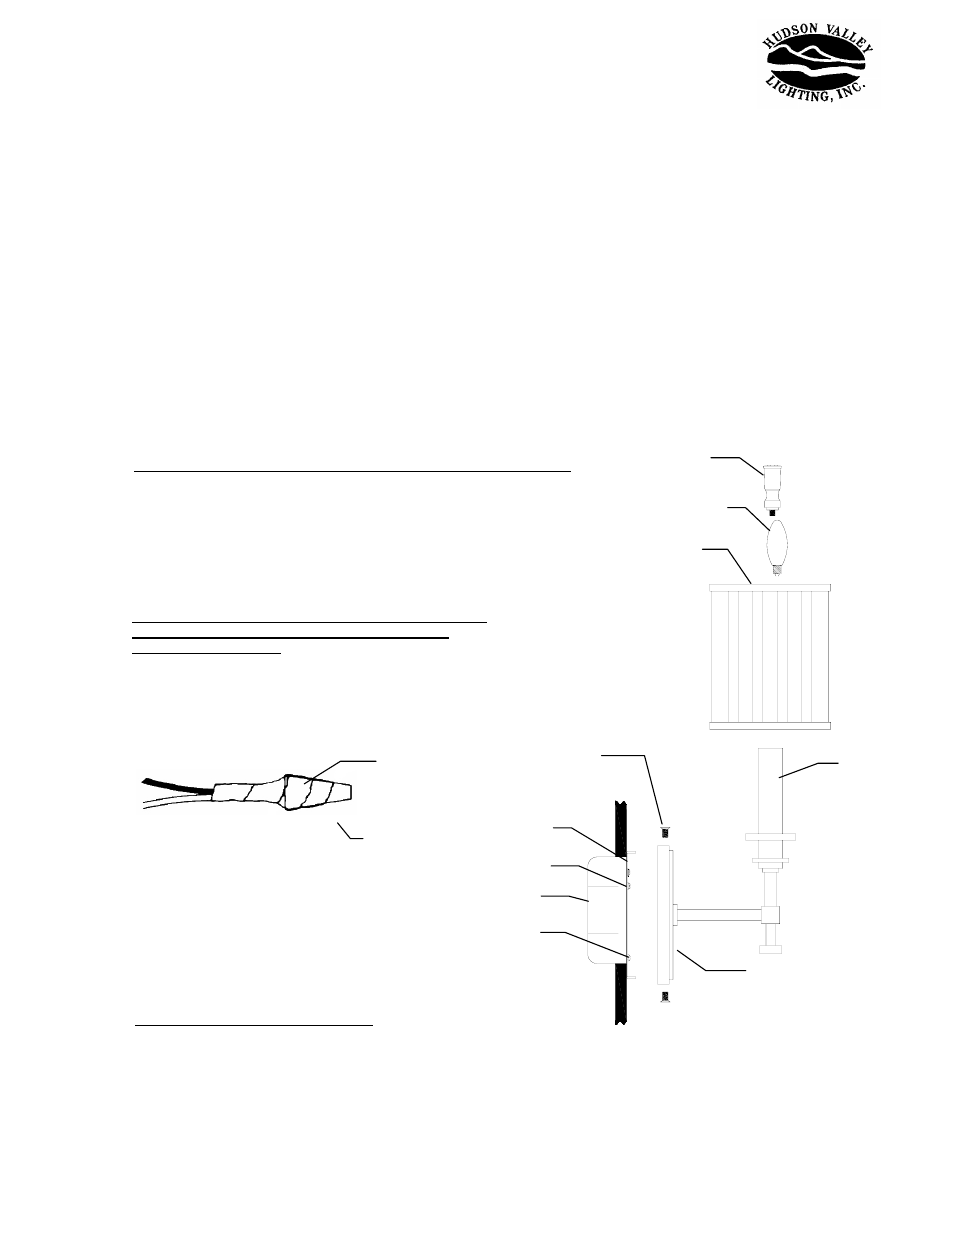 Hudson Valley Lighting Berwick 241 User Manual 1 Page Also For Fuse Box Short Circuit Along With How To Wire An Electrical Outlet 242